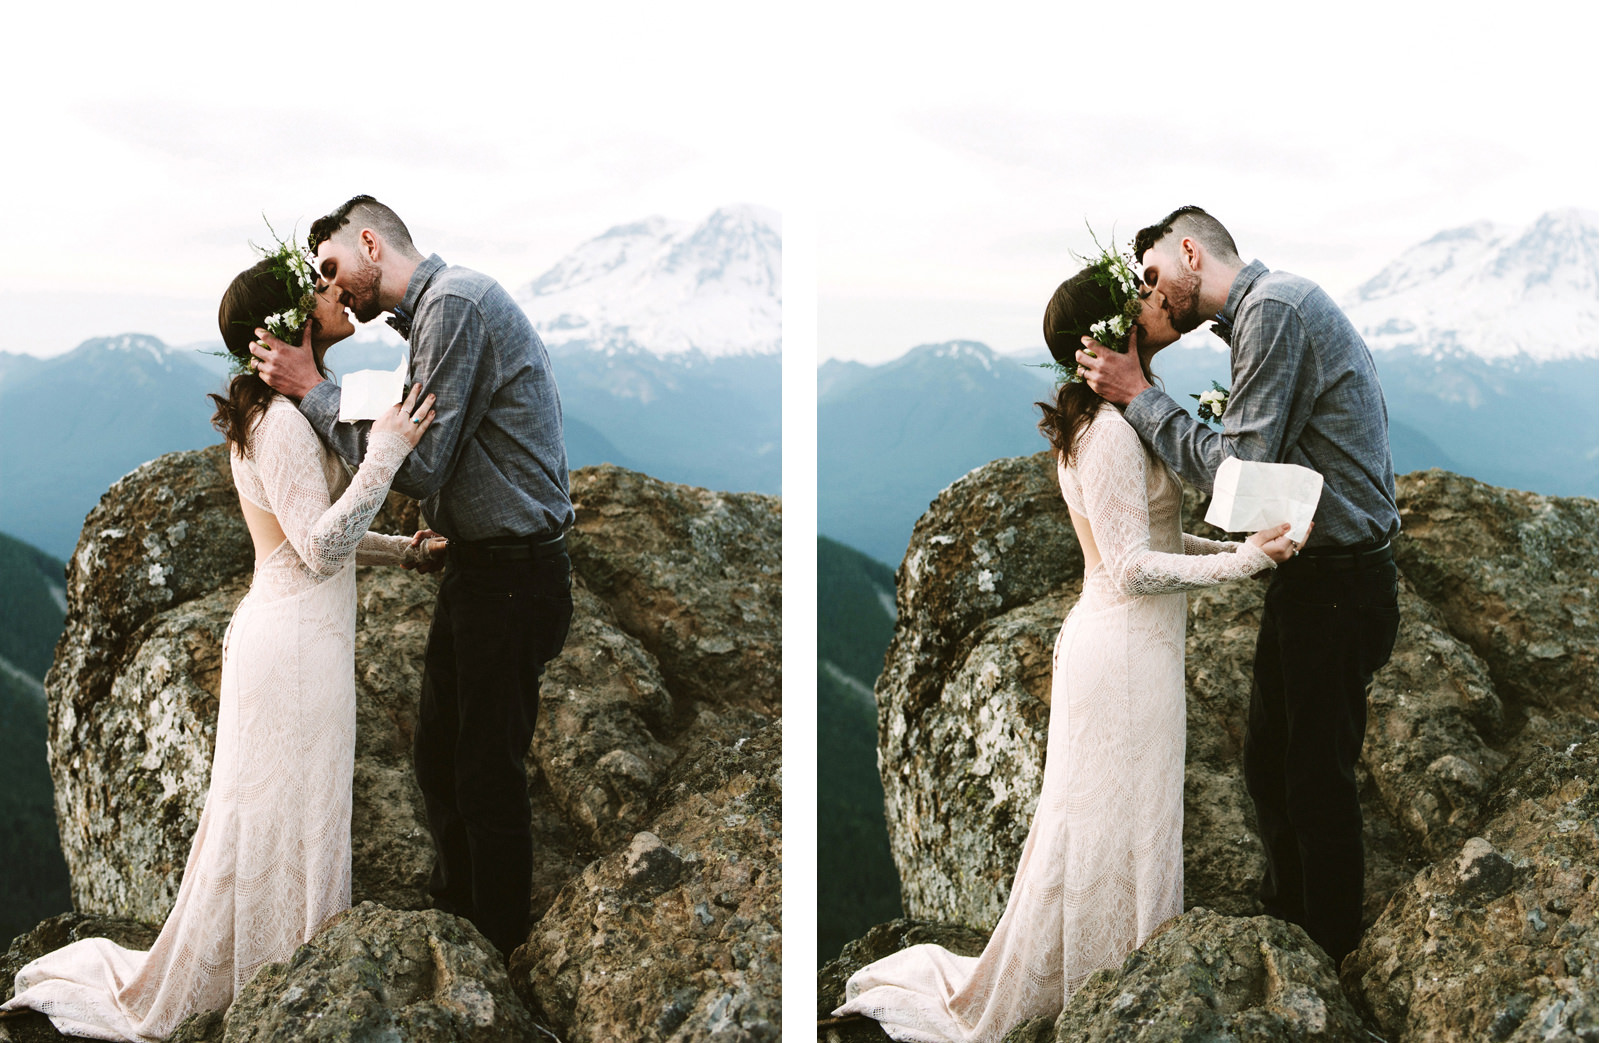 katelynnethan-blog-32 MOUNT RAINIER LOOKOUT ELOPEMENT